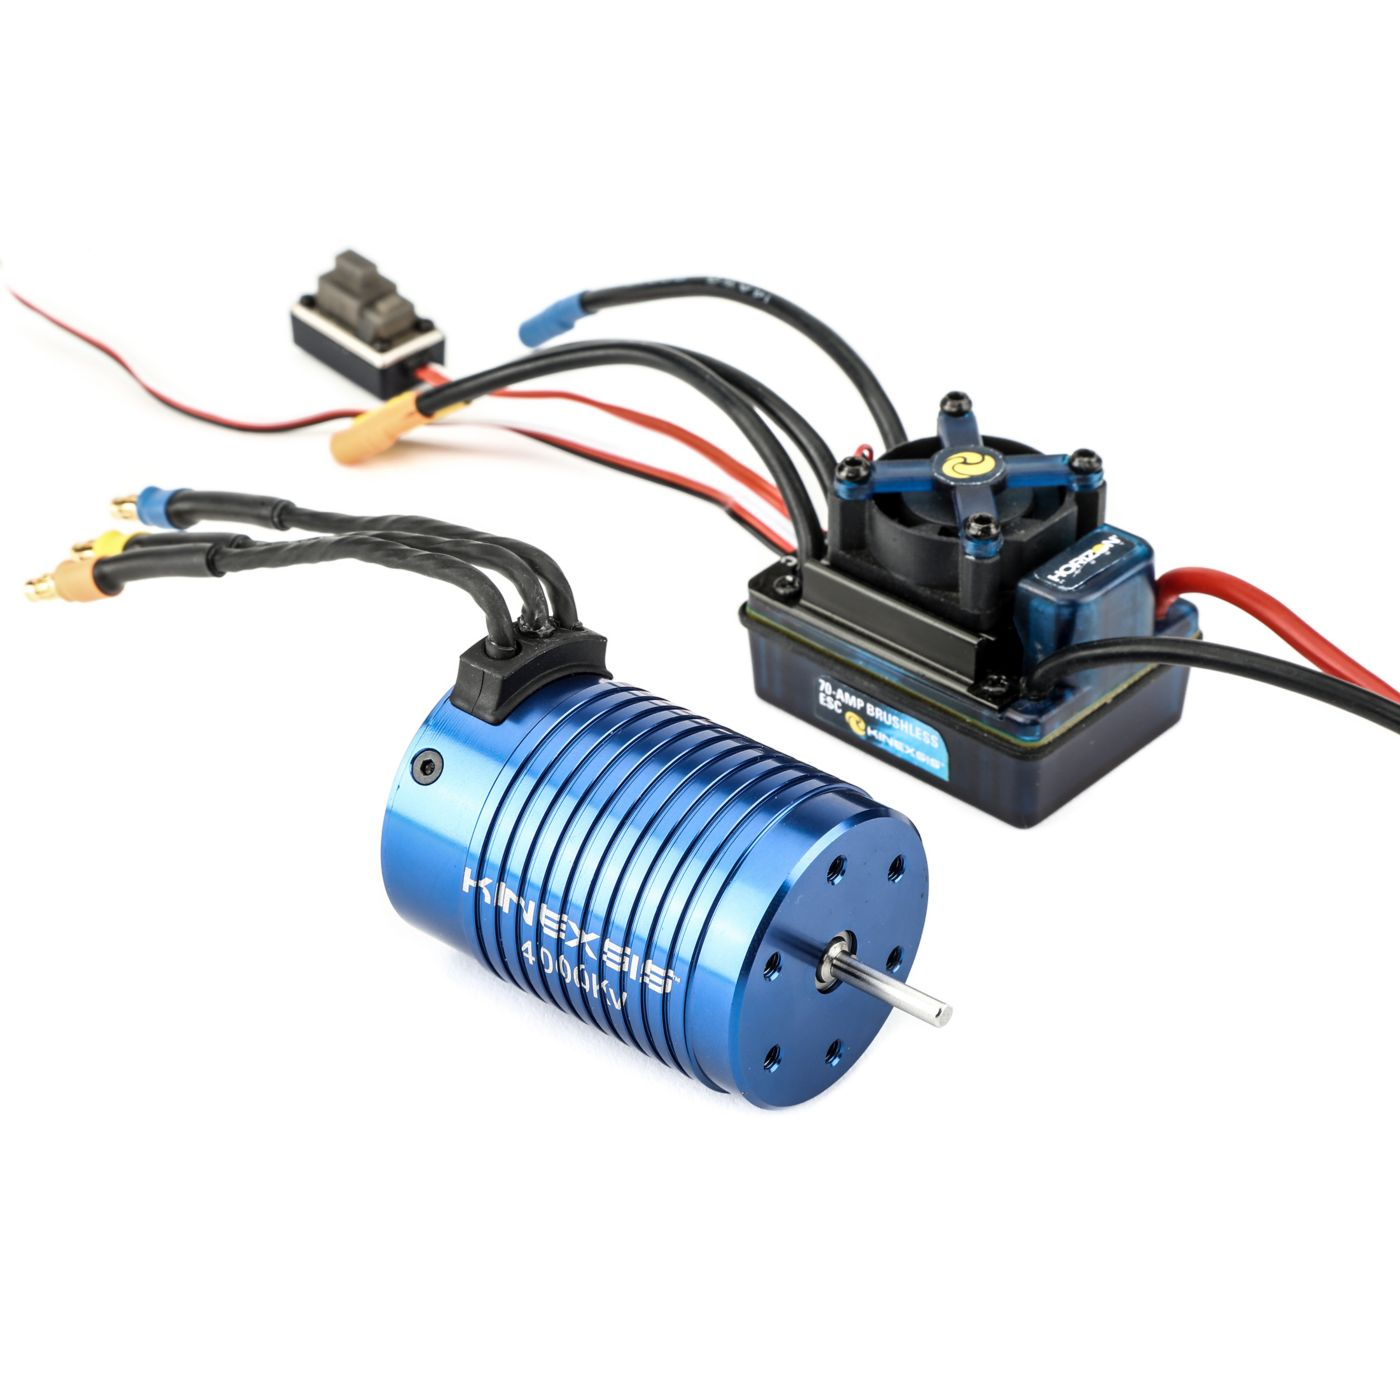 small resolution of image for 1 10 4 pole 4000kv esc motor combo from horizonhobby